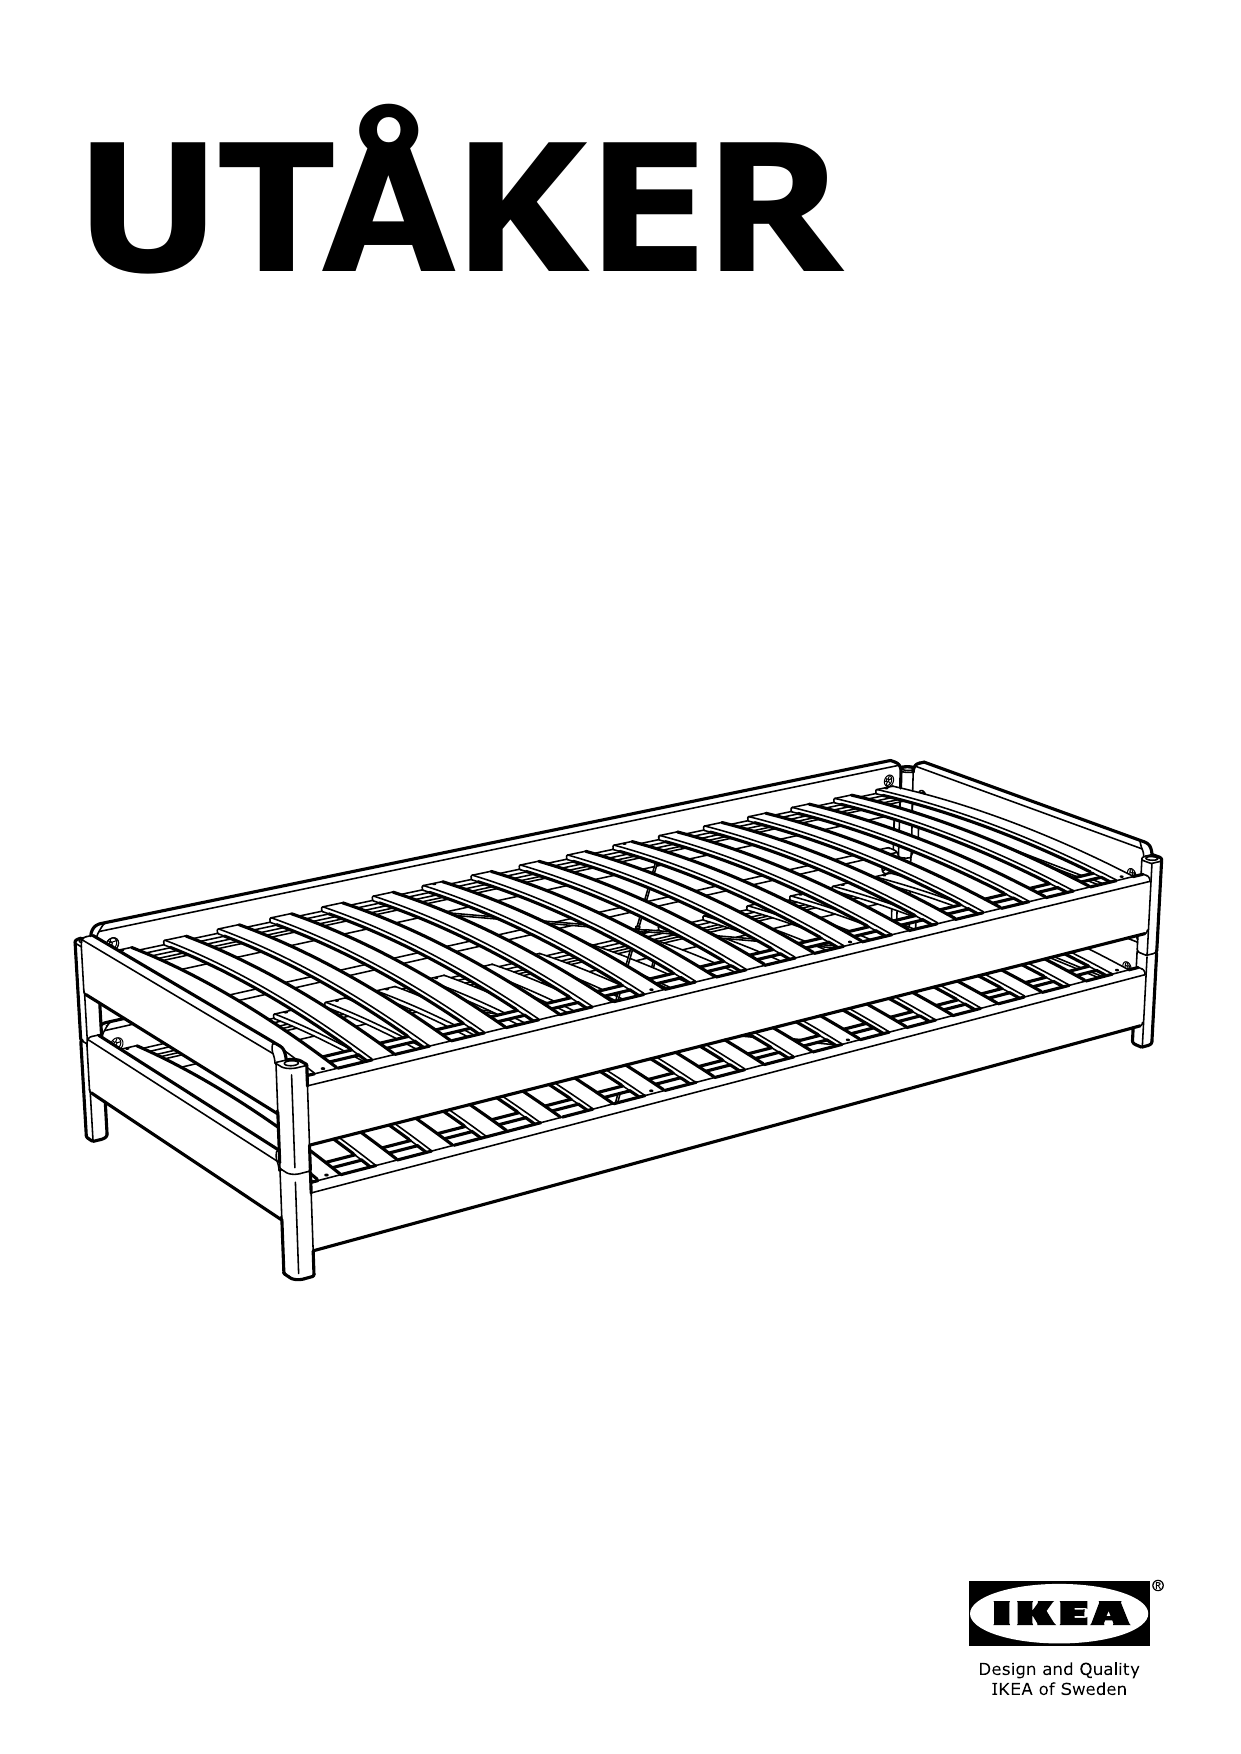 IKEA UTÅKER Stackable bed Assembly Instruction